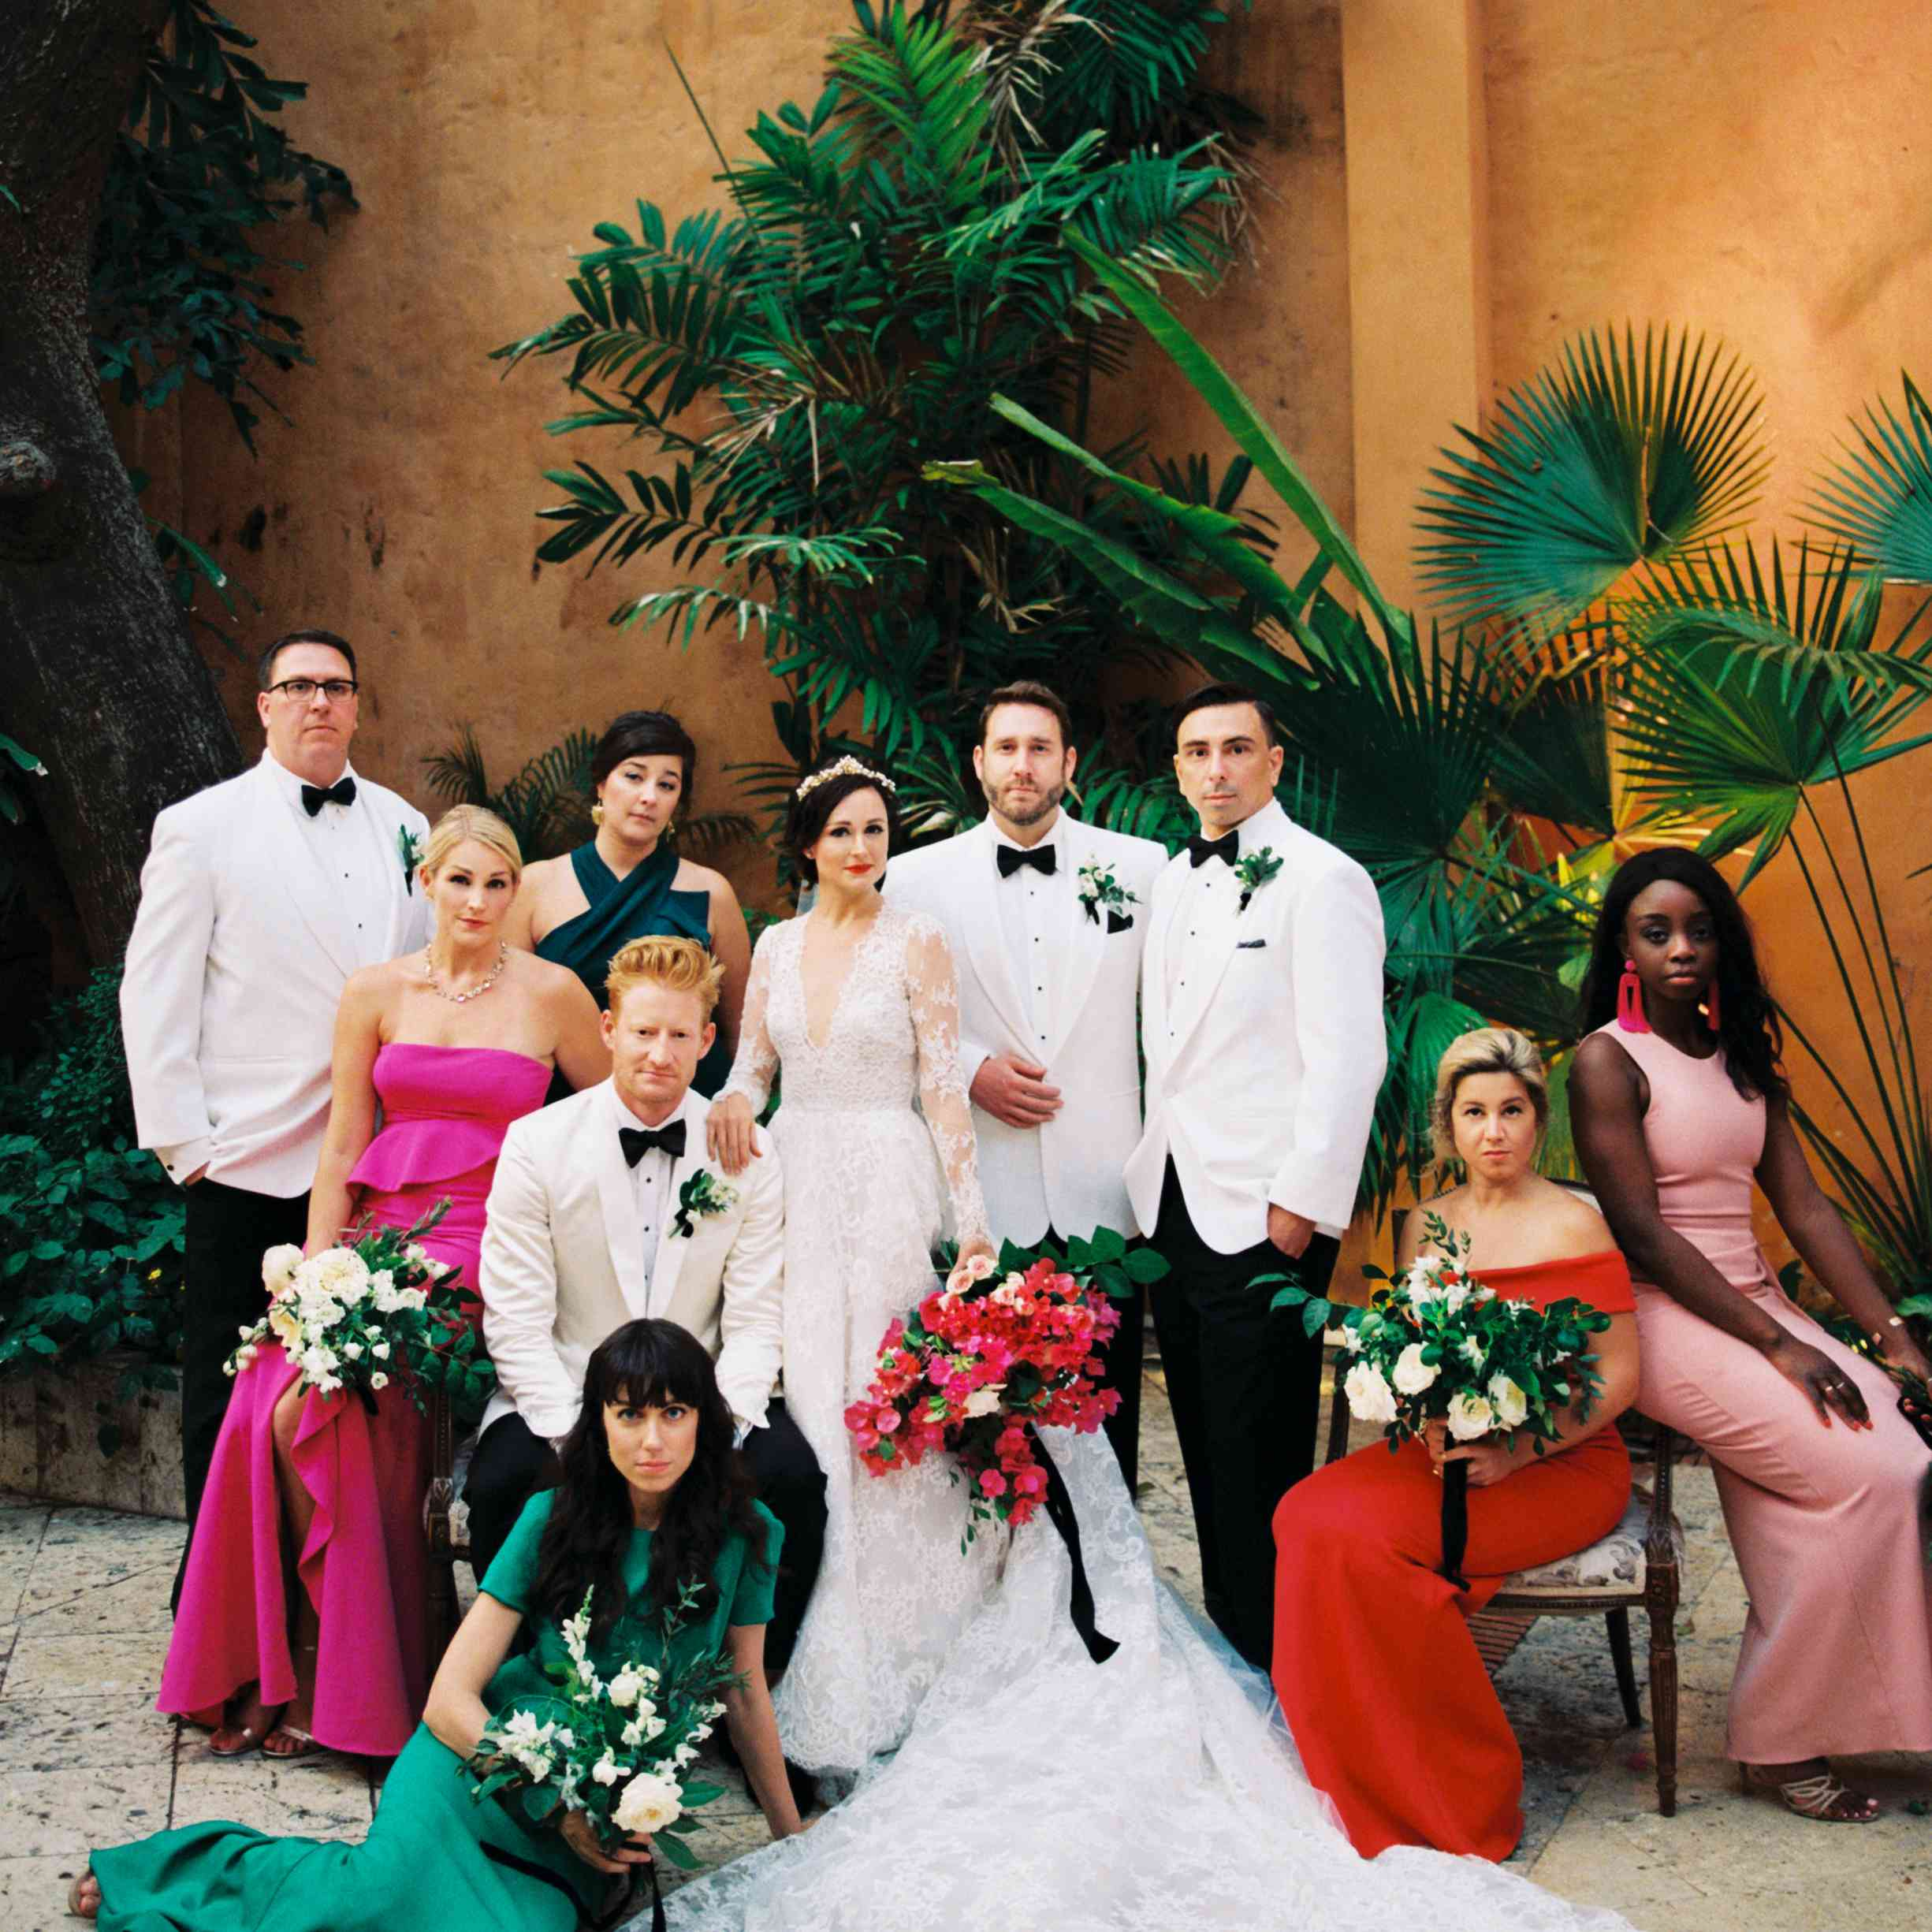 Groomsmen in white tuxedo jackets and bridesmaids in jewel-toned dresses